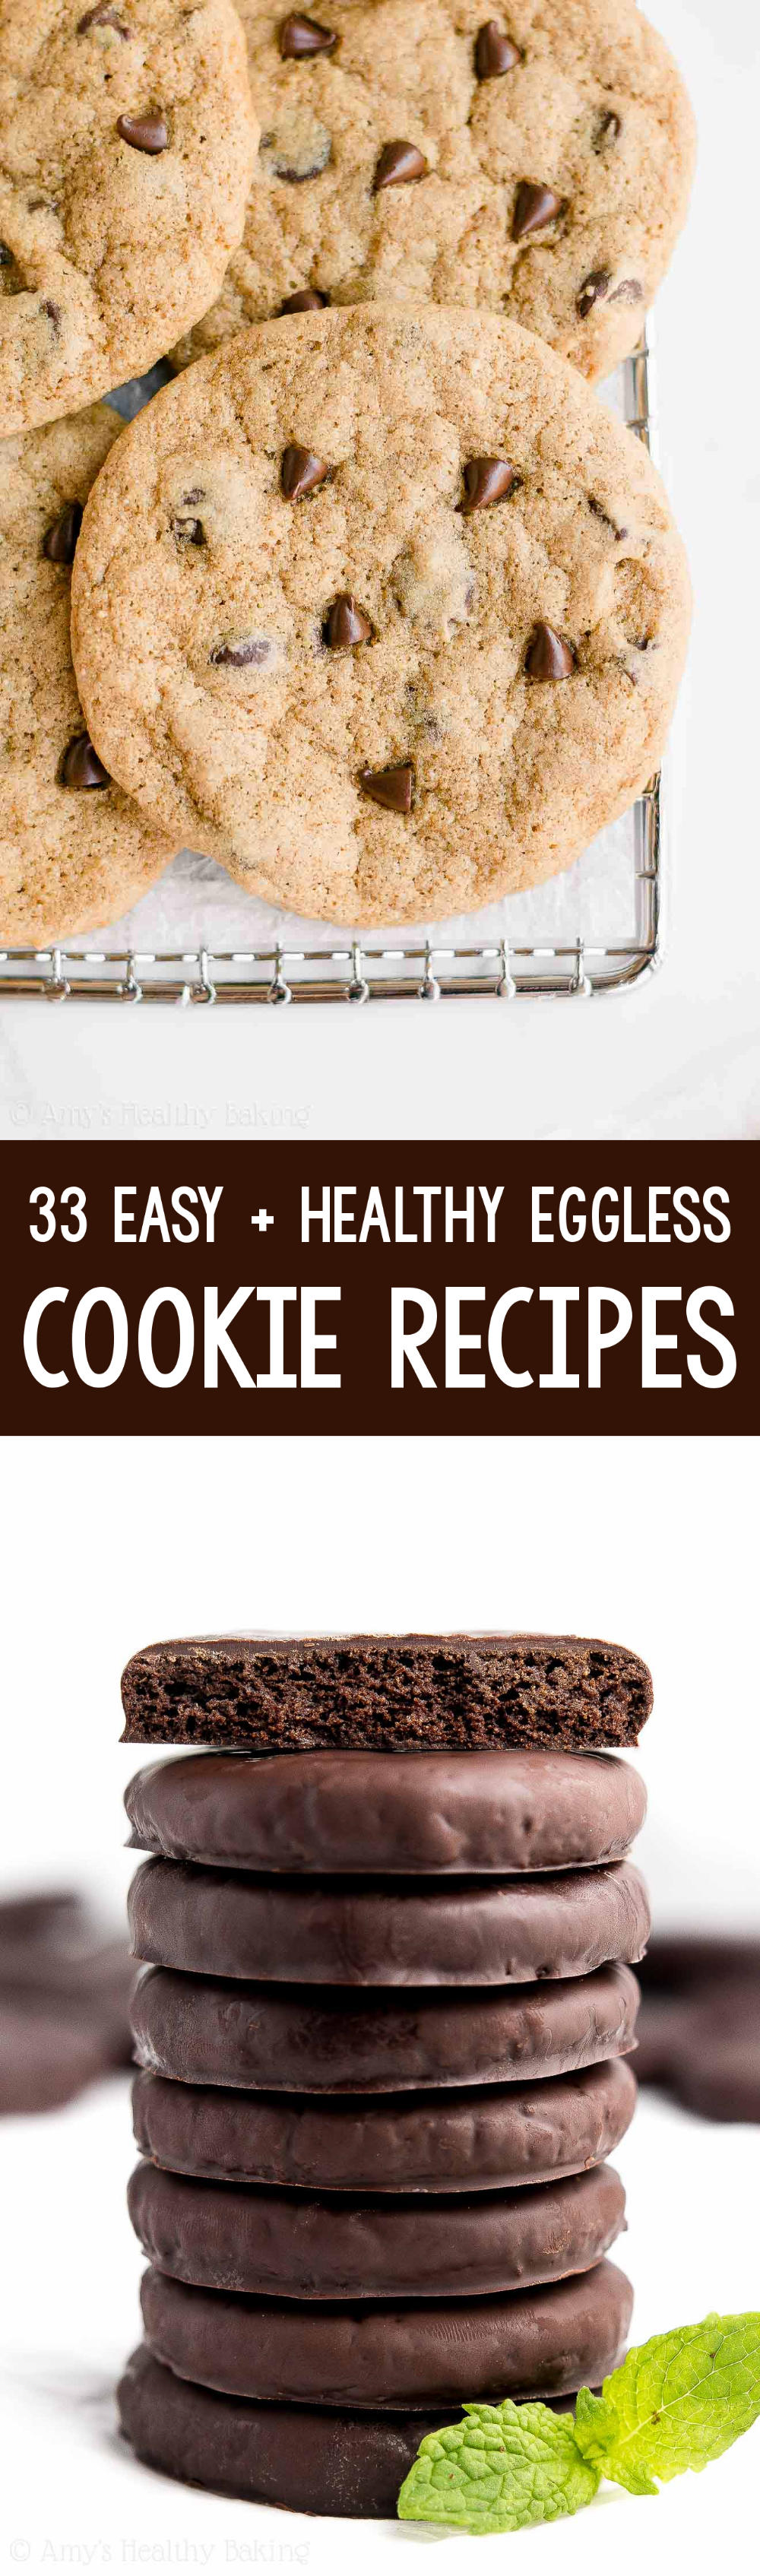 The Best Ever Easy Healthy Eggless Cookie Recipes Amy S Healthy Baking In 2020 Eggless Cookie Recipes Cookie Recipes Eggless Cookies